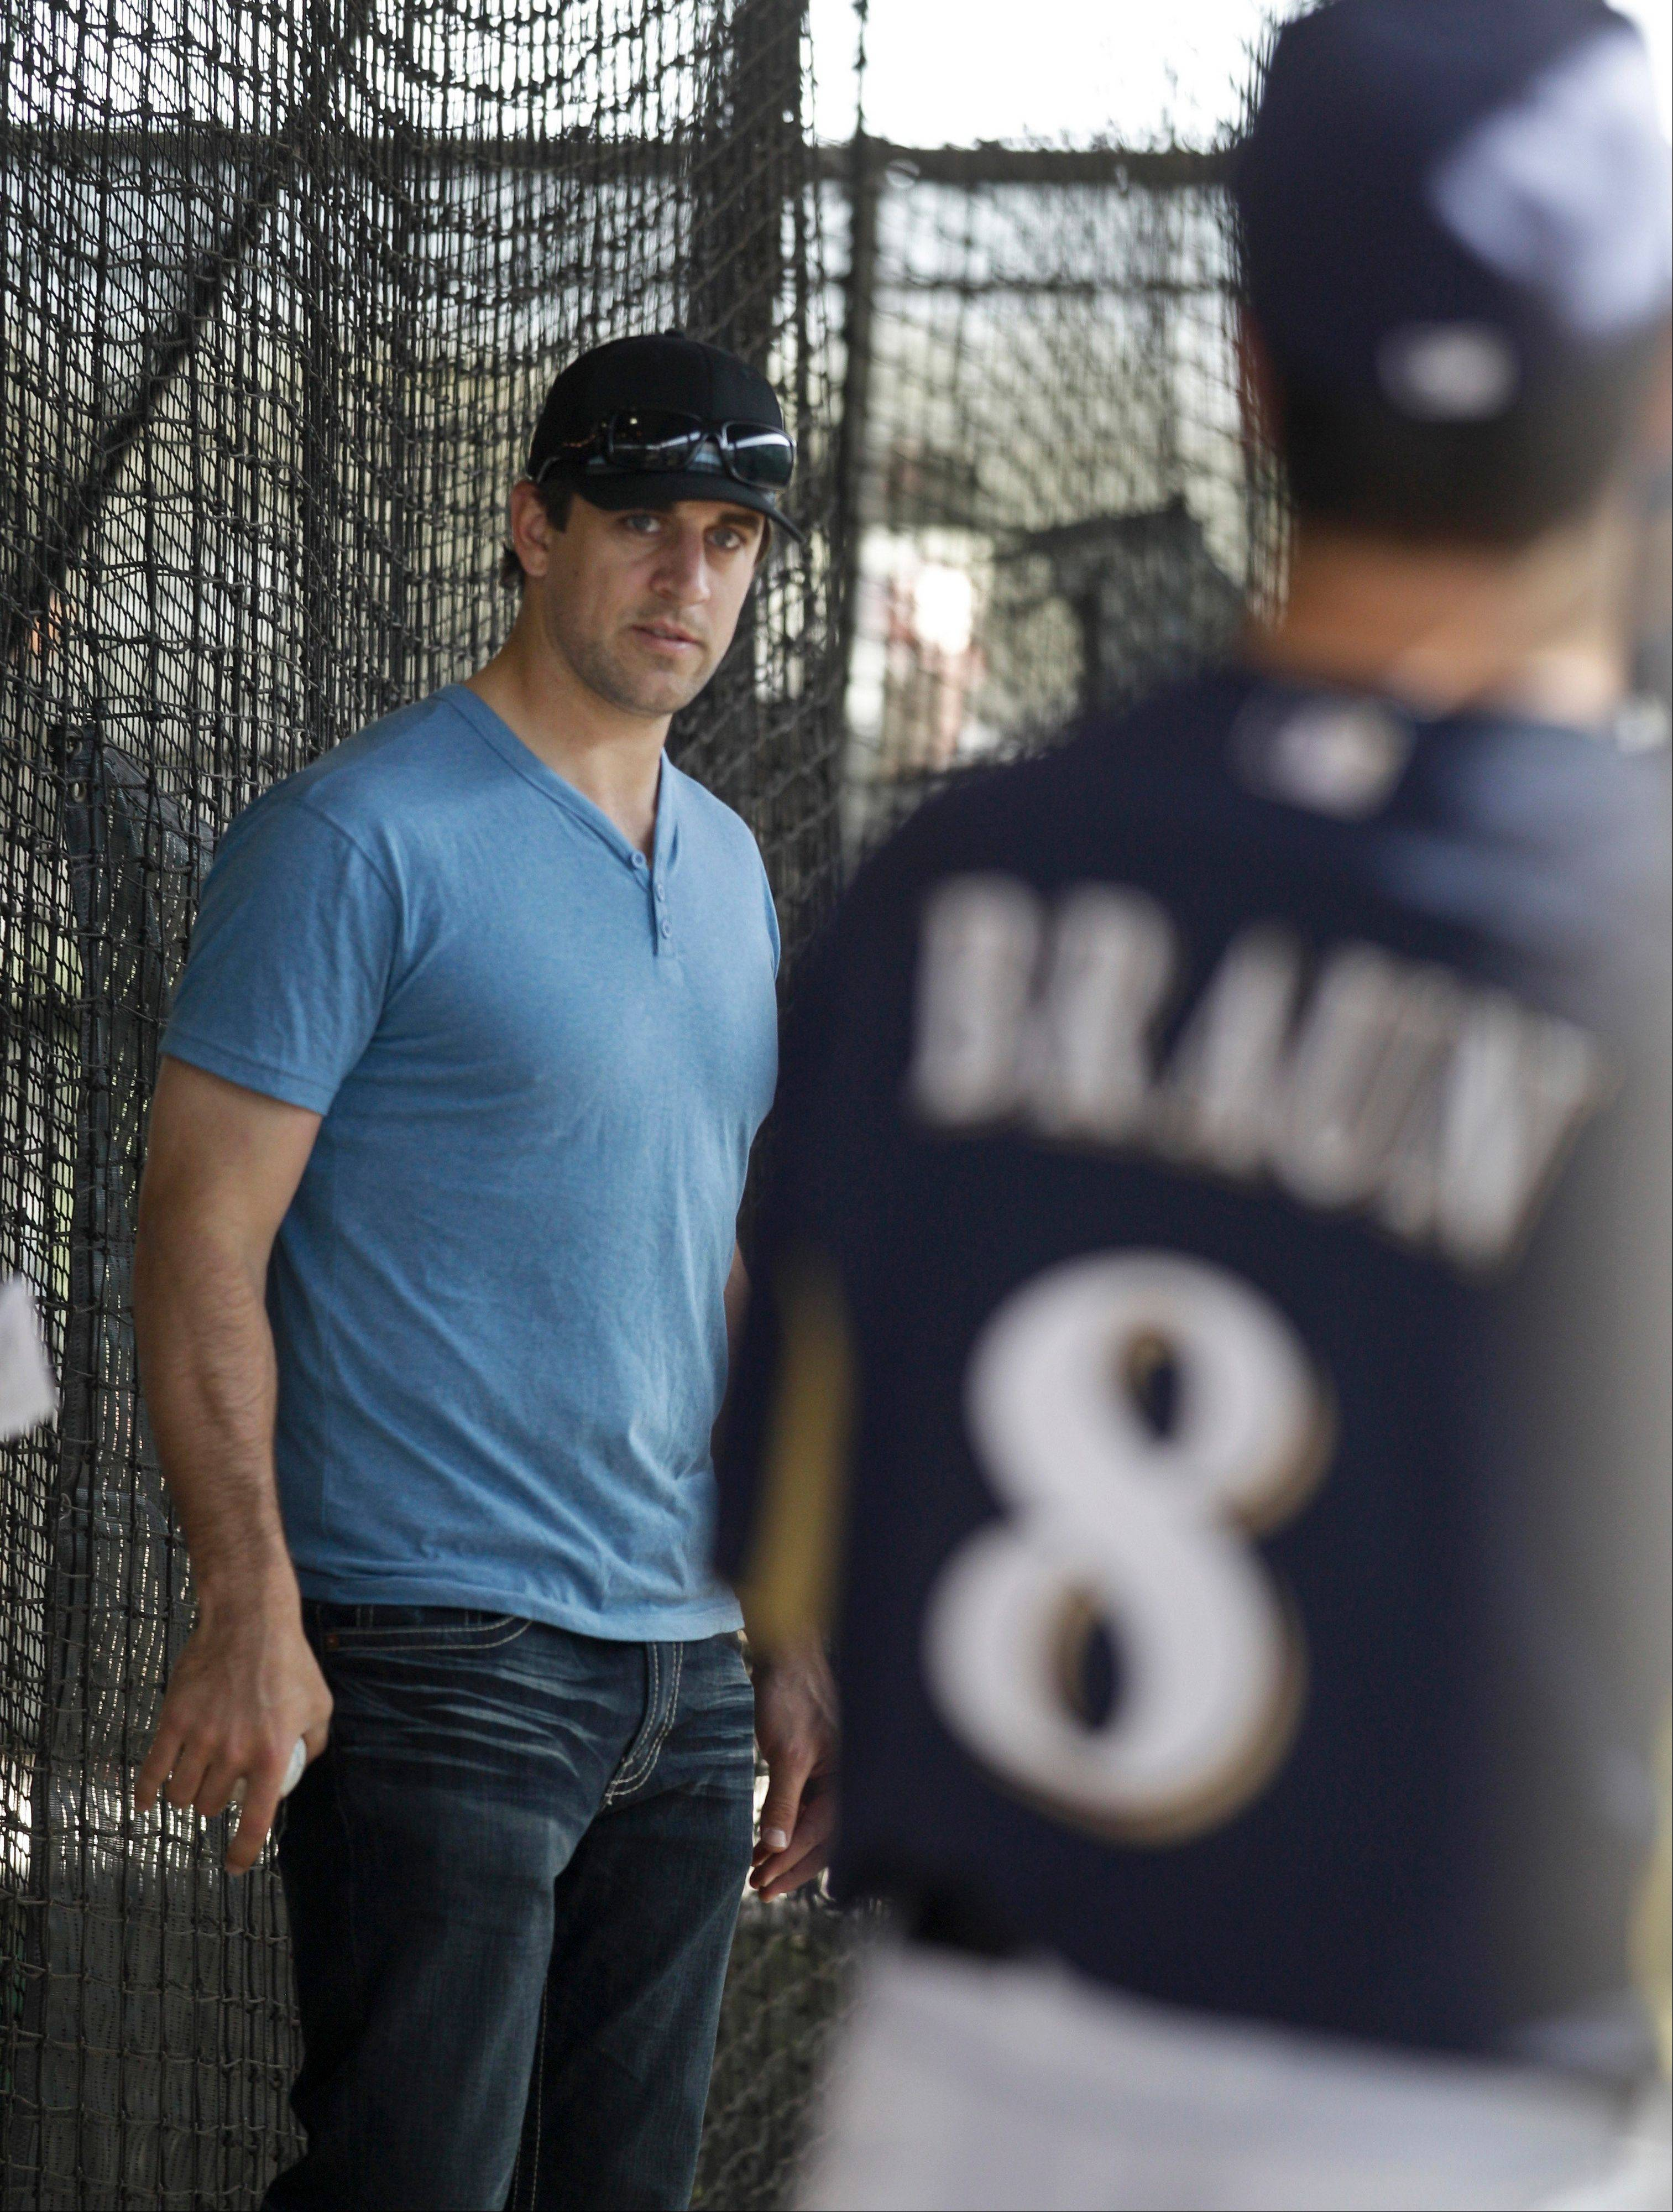 The Brewers' Ryan Braun, right, and Green Bay Packers quarterback Aaron Rodgers chat during a spring training workout in Phoenix.